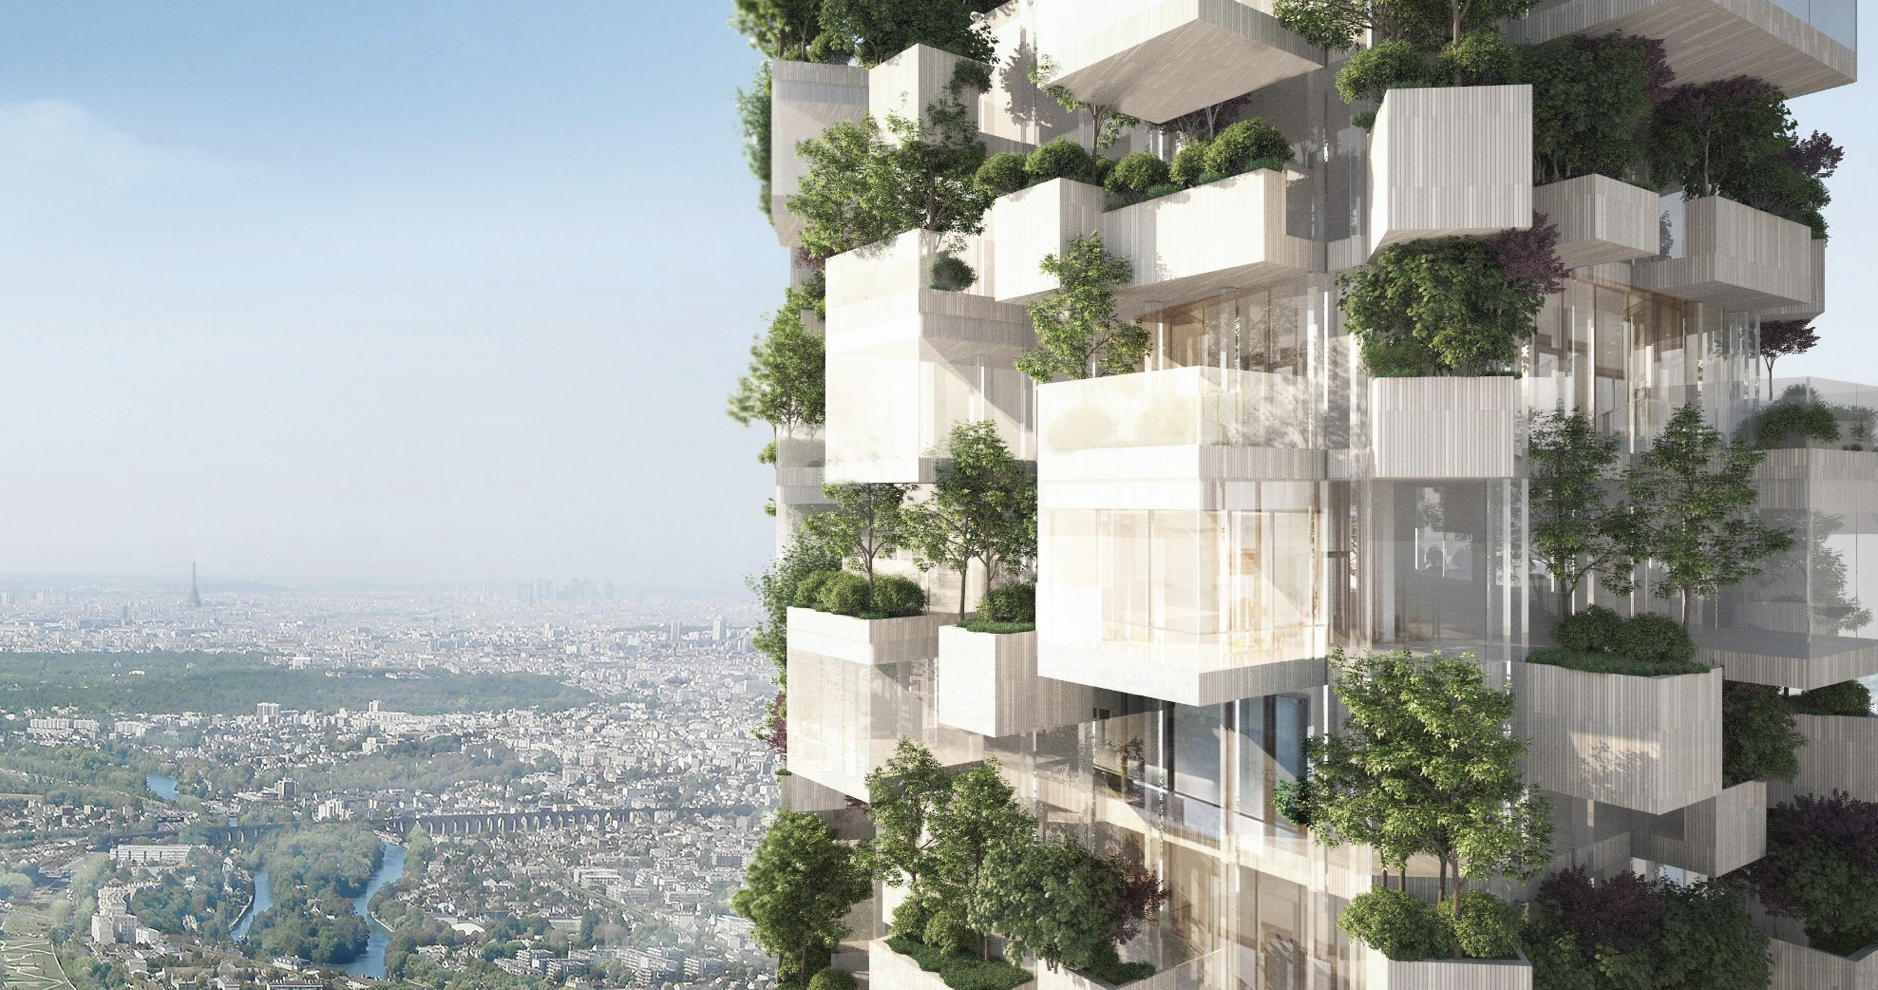 Sustainable architecture: The beauty behind energy